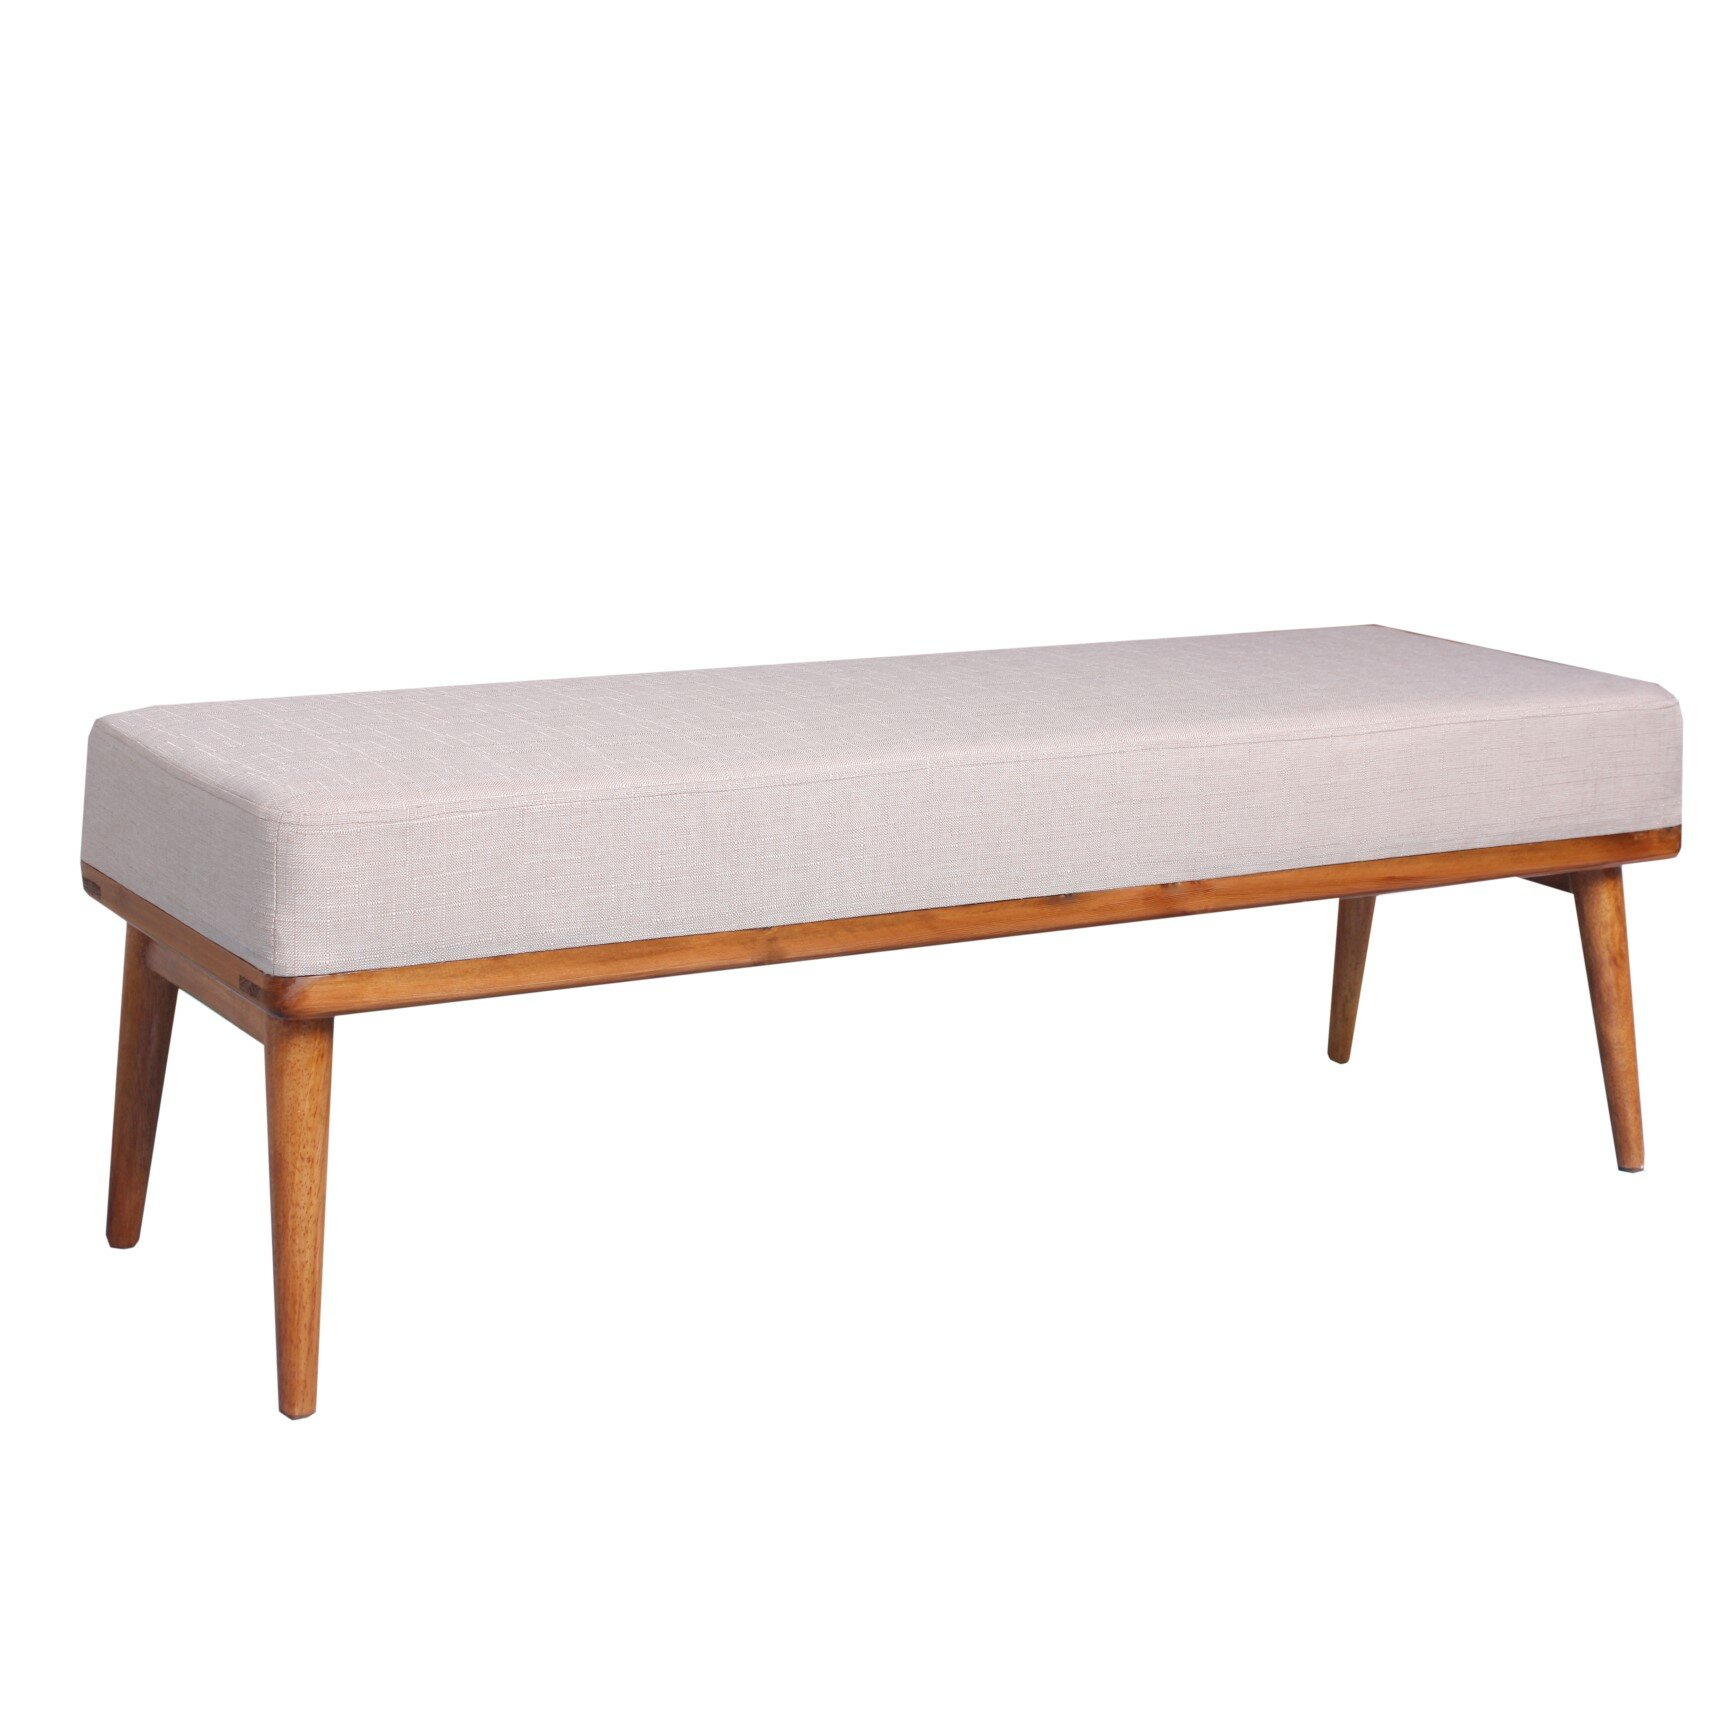 Porthos home vivienne upholstered bedroom bench reviews for Bedroom upholstered bench